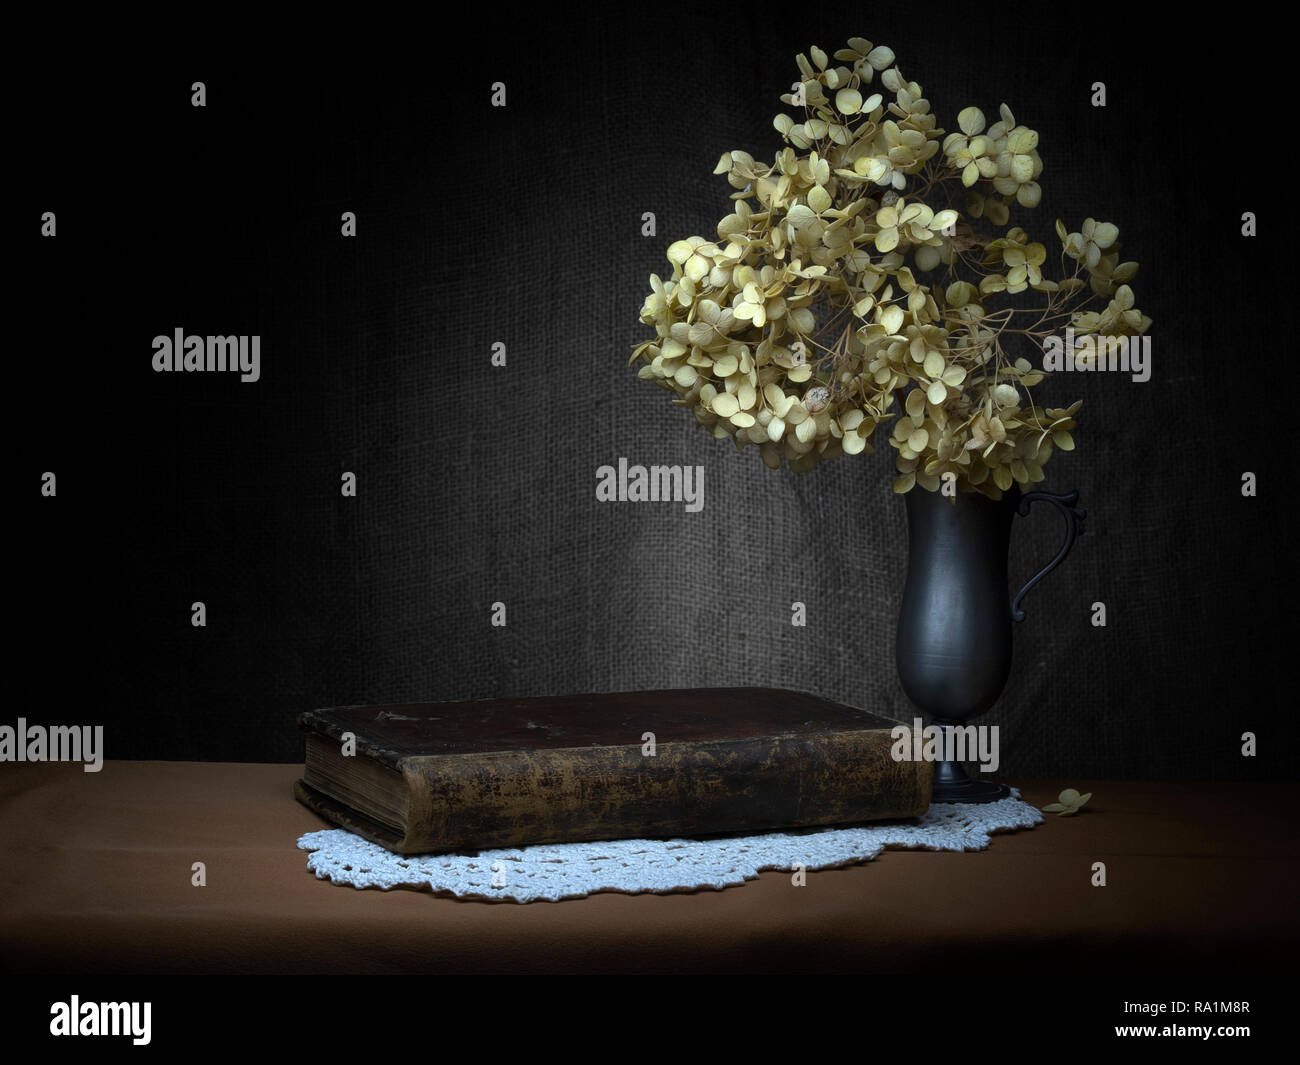 Melancholy, still life with old book, dried hydrangea flowers. Baroque, chiaroscuro style by means of light painting. - Stock Image